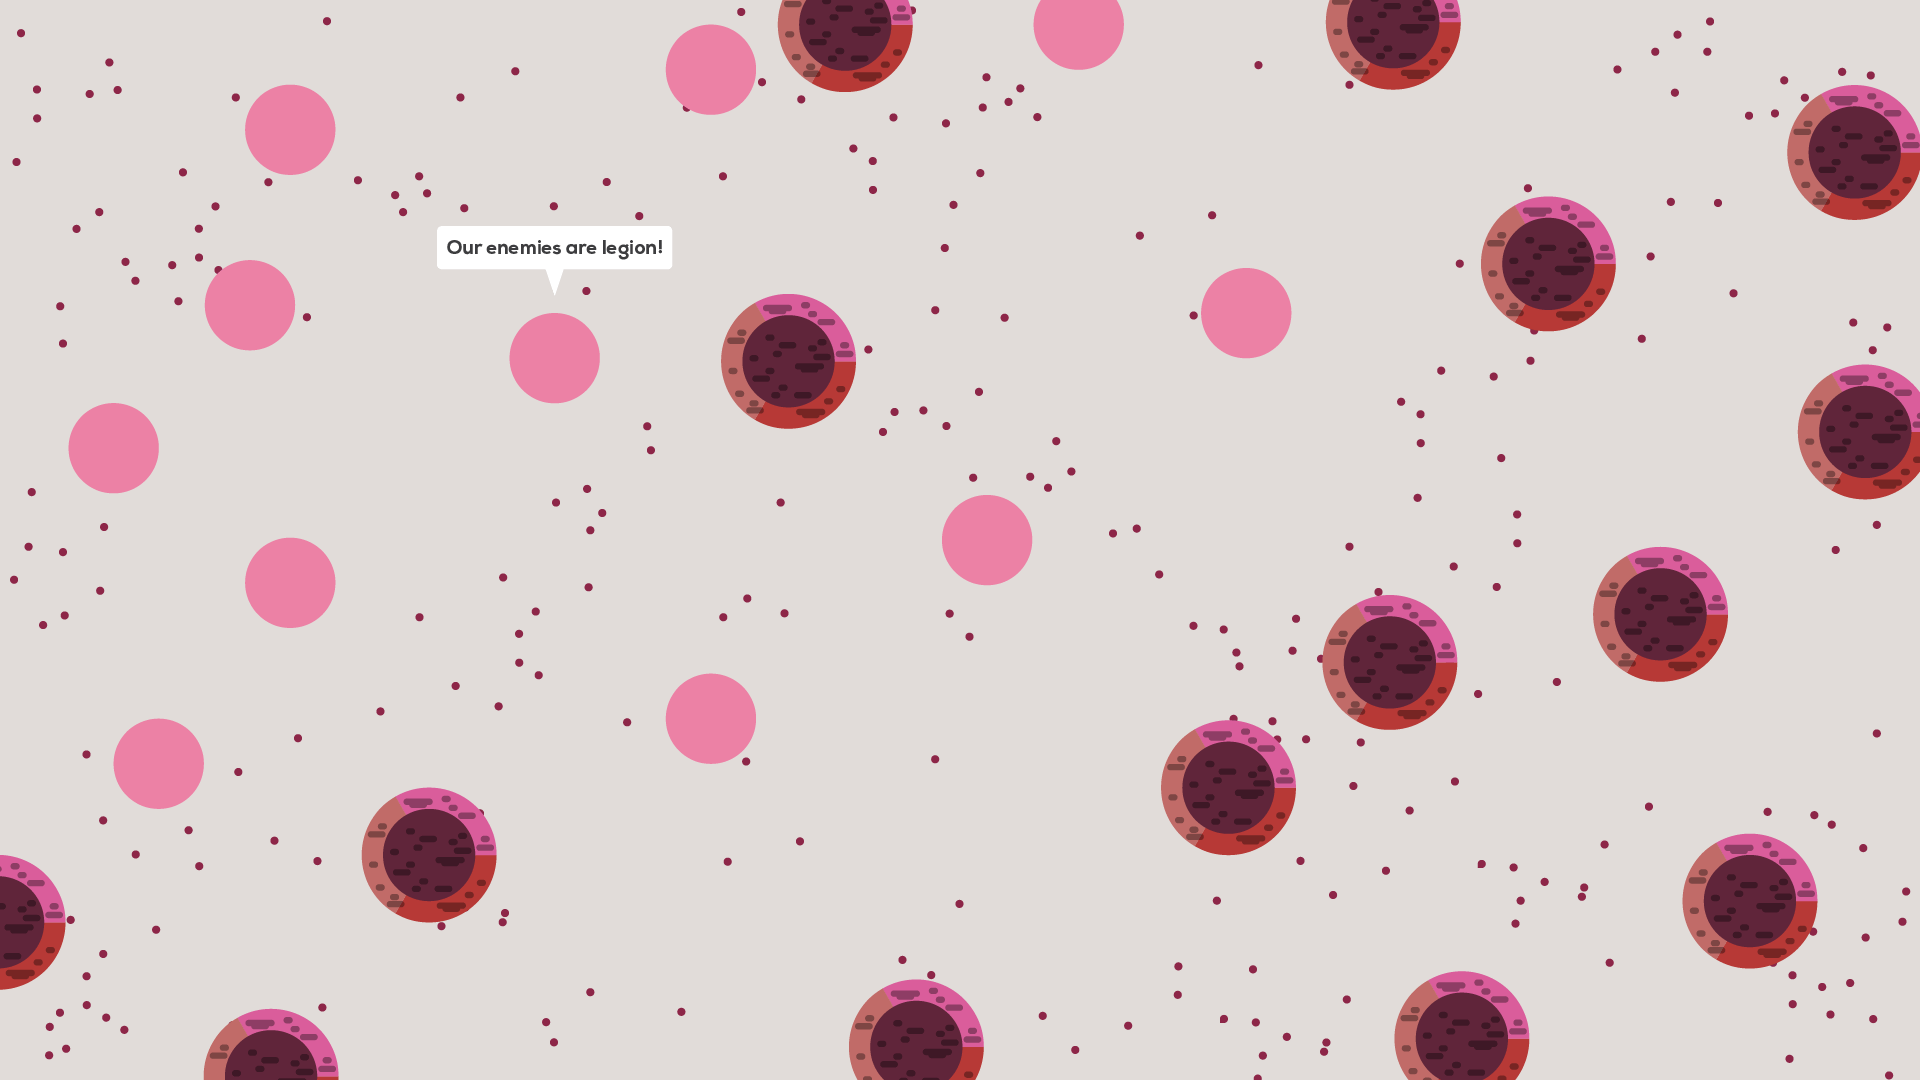 190_Measles Explained_Kurzgesagt Project Pic 4